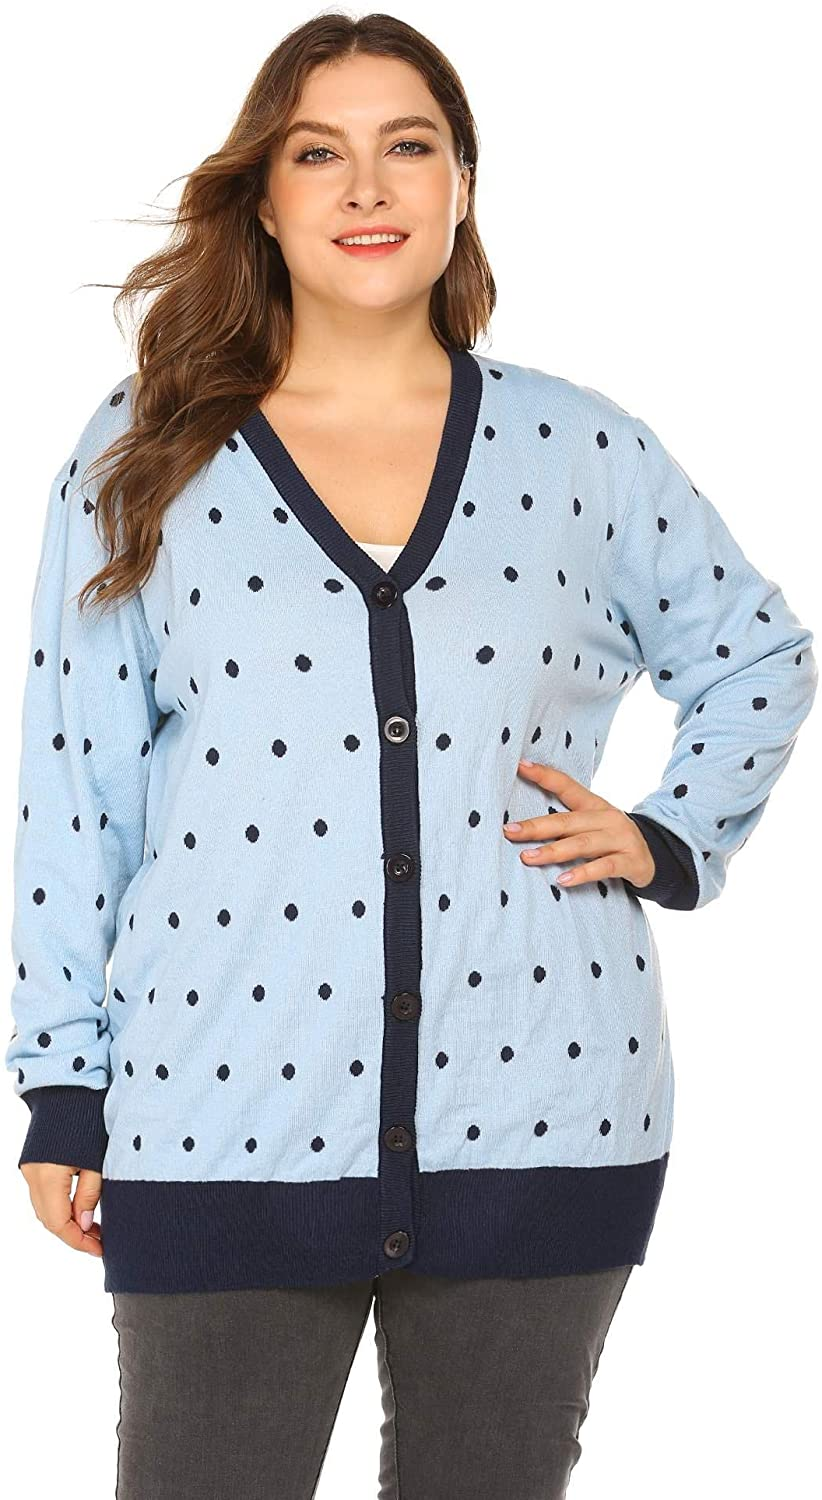 IN'VOLAND Women's Plus Size Open Front Cardigan Sweater Polka Dot Cardigan Ligtweight Button Up Casual Knit Cardigan